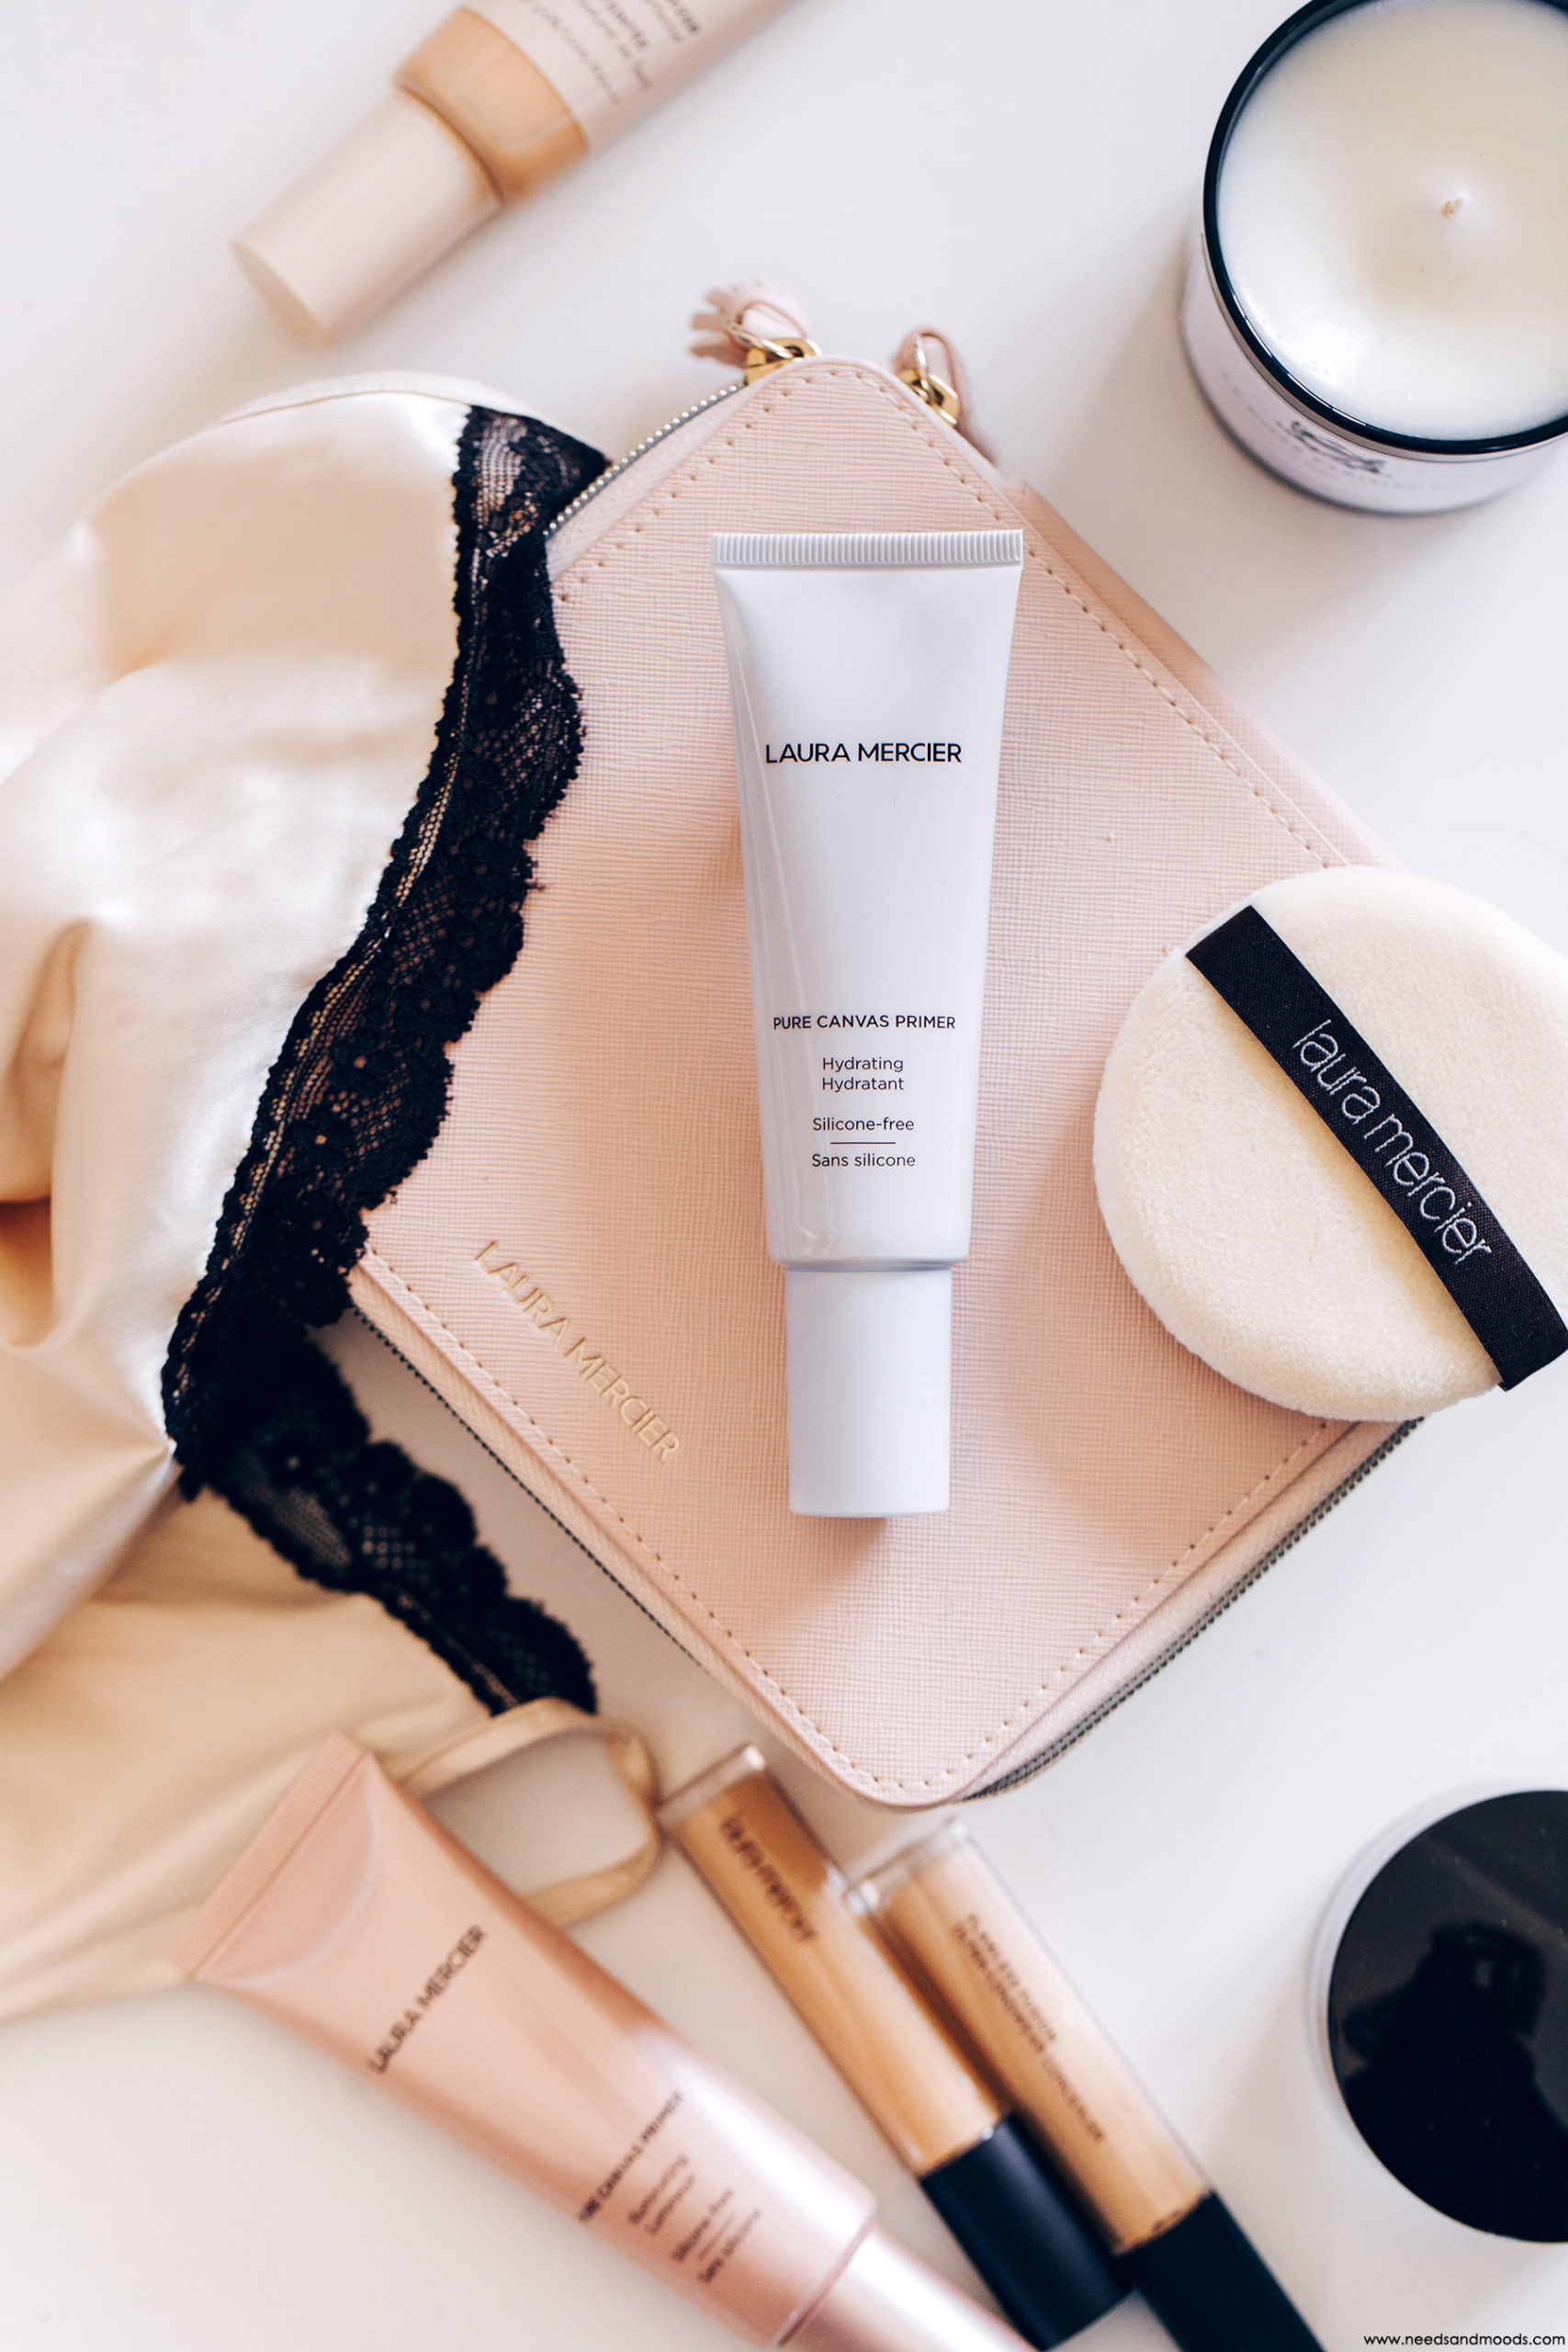 laura mercier pure canvas primer hydrating avis